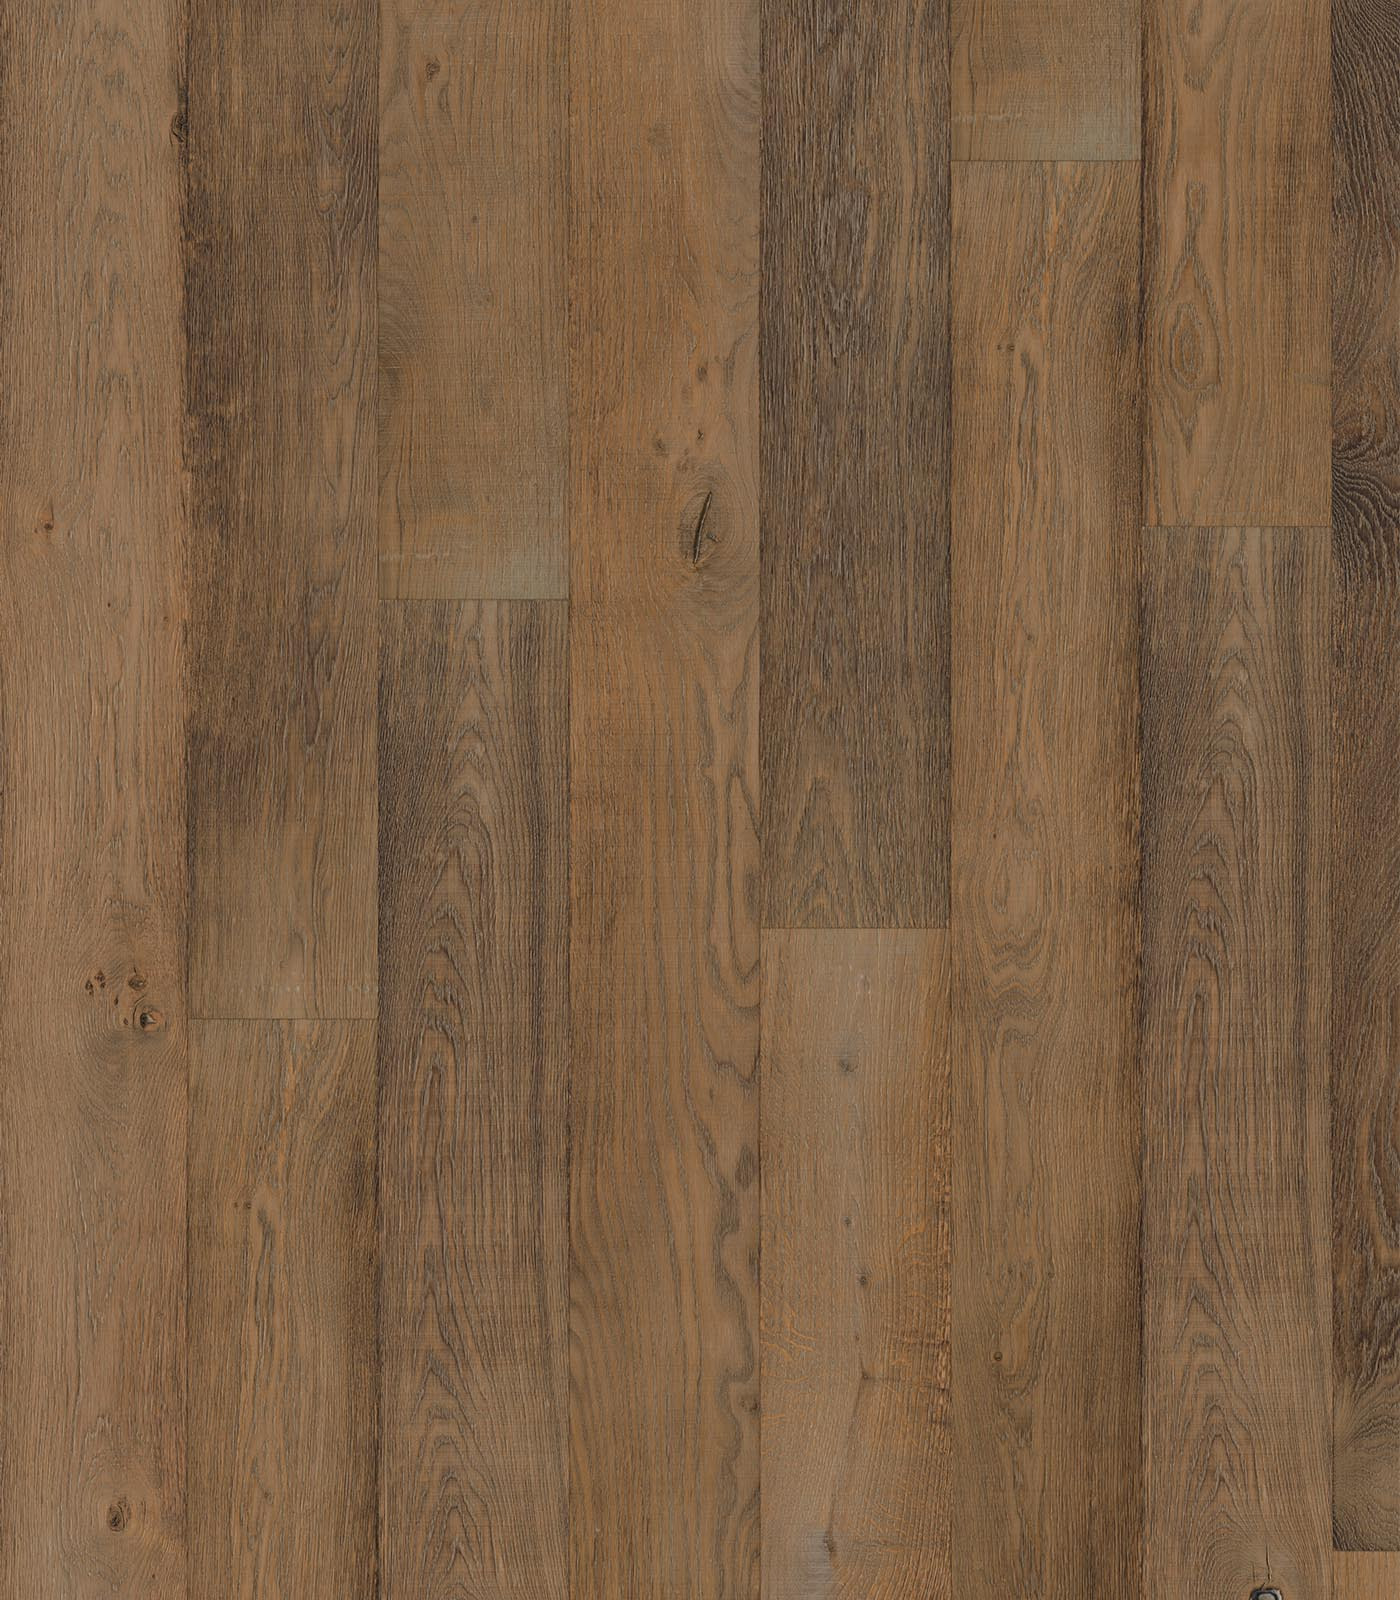 Bruges-European Oak floors-Heritage collection-flat